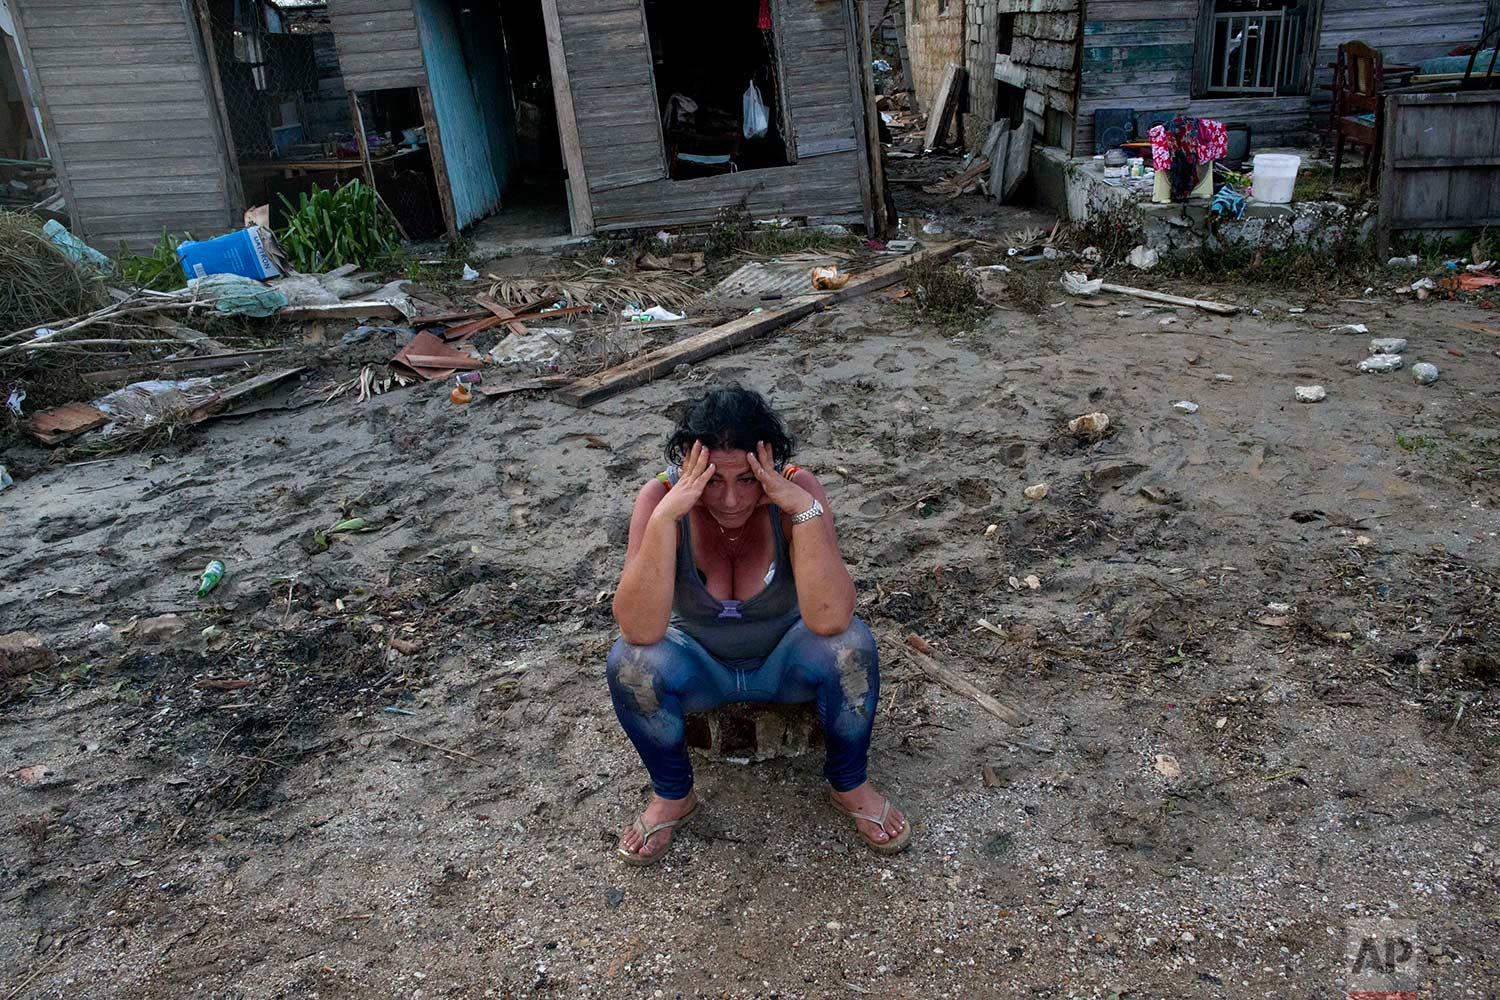 A despondent Mariela Leon sits in front of her flood damaged home after the passing of Hurricane Irma, in Isabela de Sagua, Cuba, Monday, Sept. 11, 2017. (AP Photo/Ramon Espinosa)